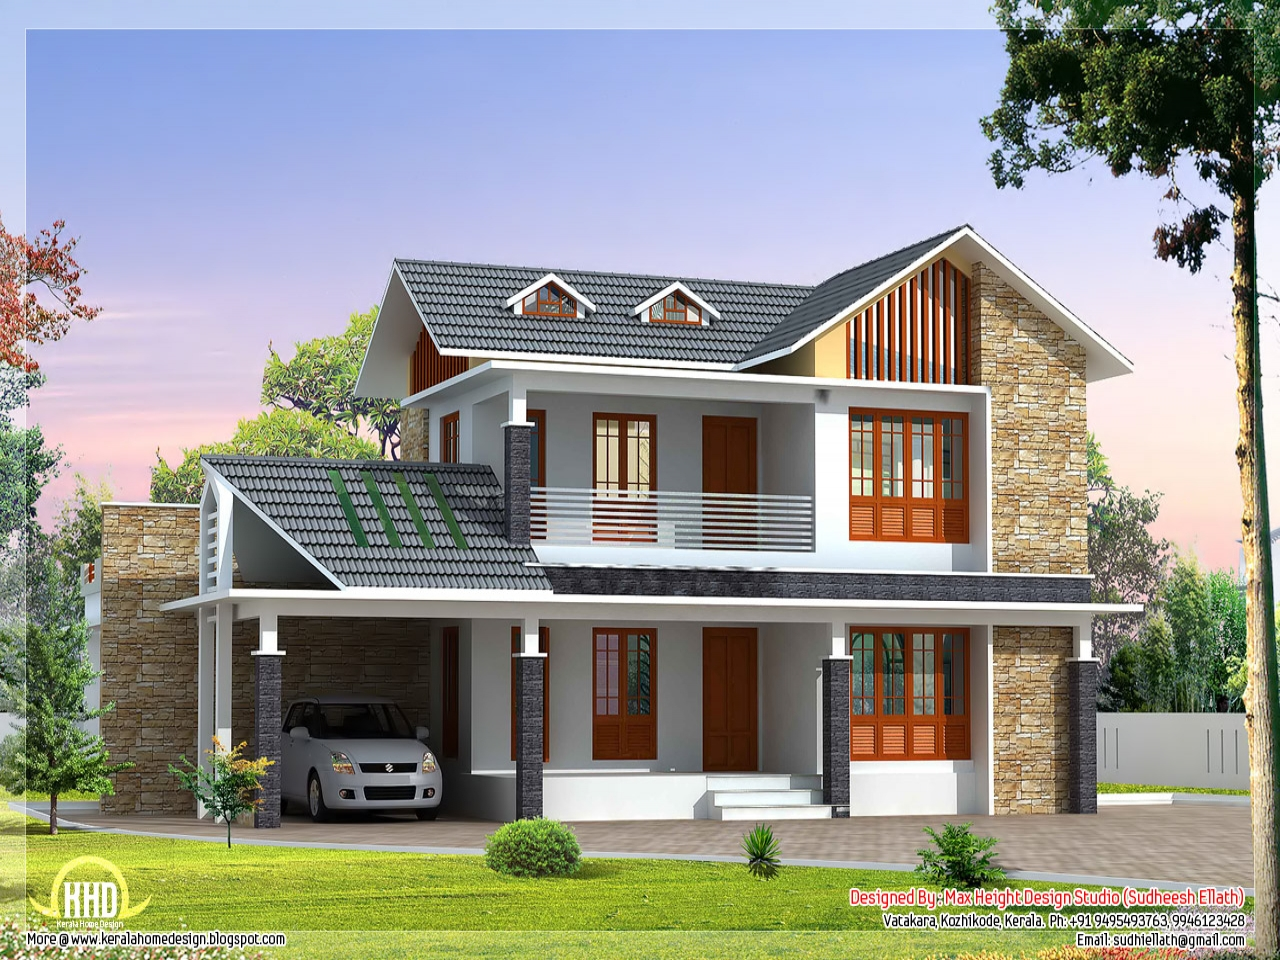 Beautiful villa house designs modern villa design housing for Beautiful villa design